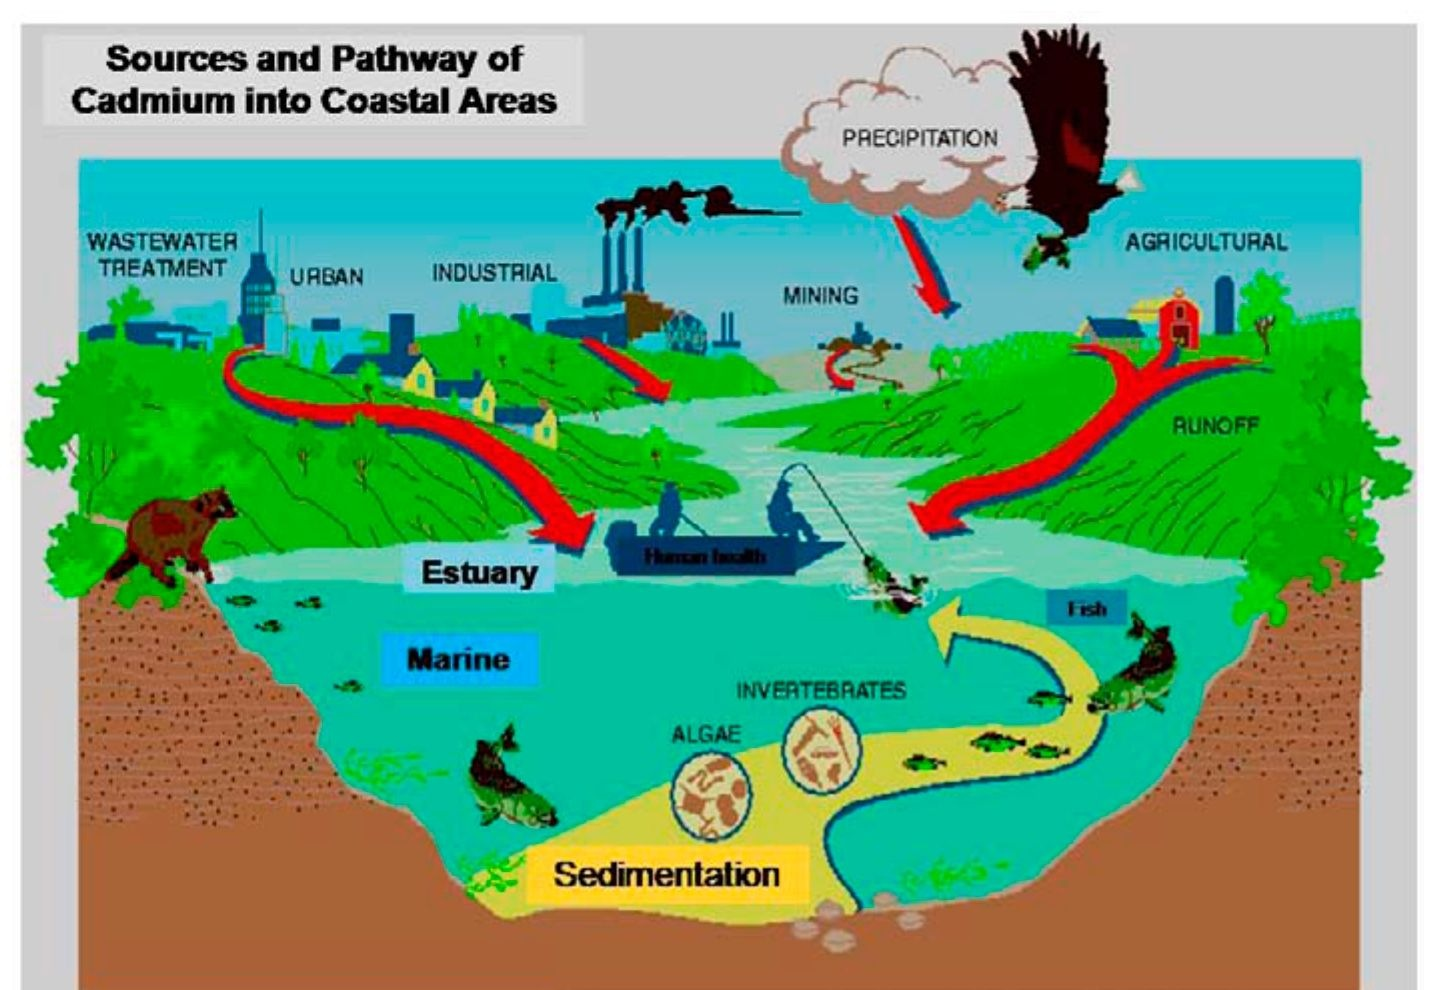 bioaccumulation and biomagnification minamata disease essay While we don't agree with 100% of the choices they deem low mercury this article still contains some good info on mercury contamination and fish.